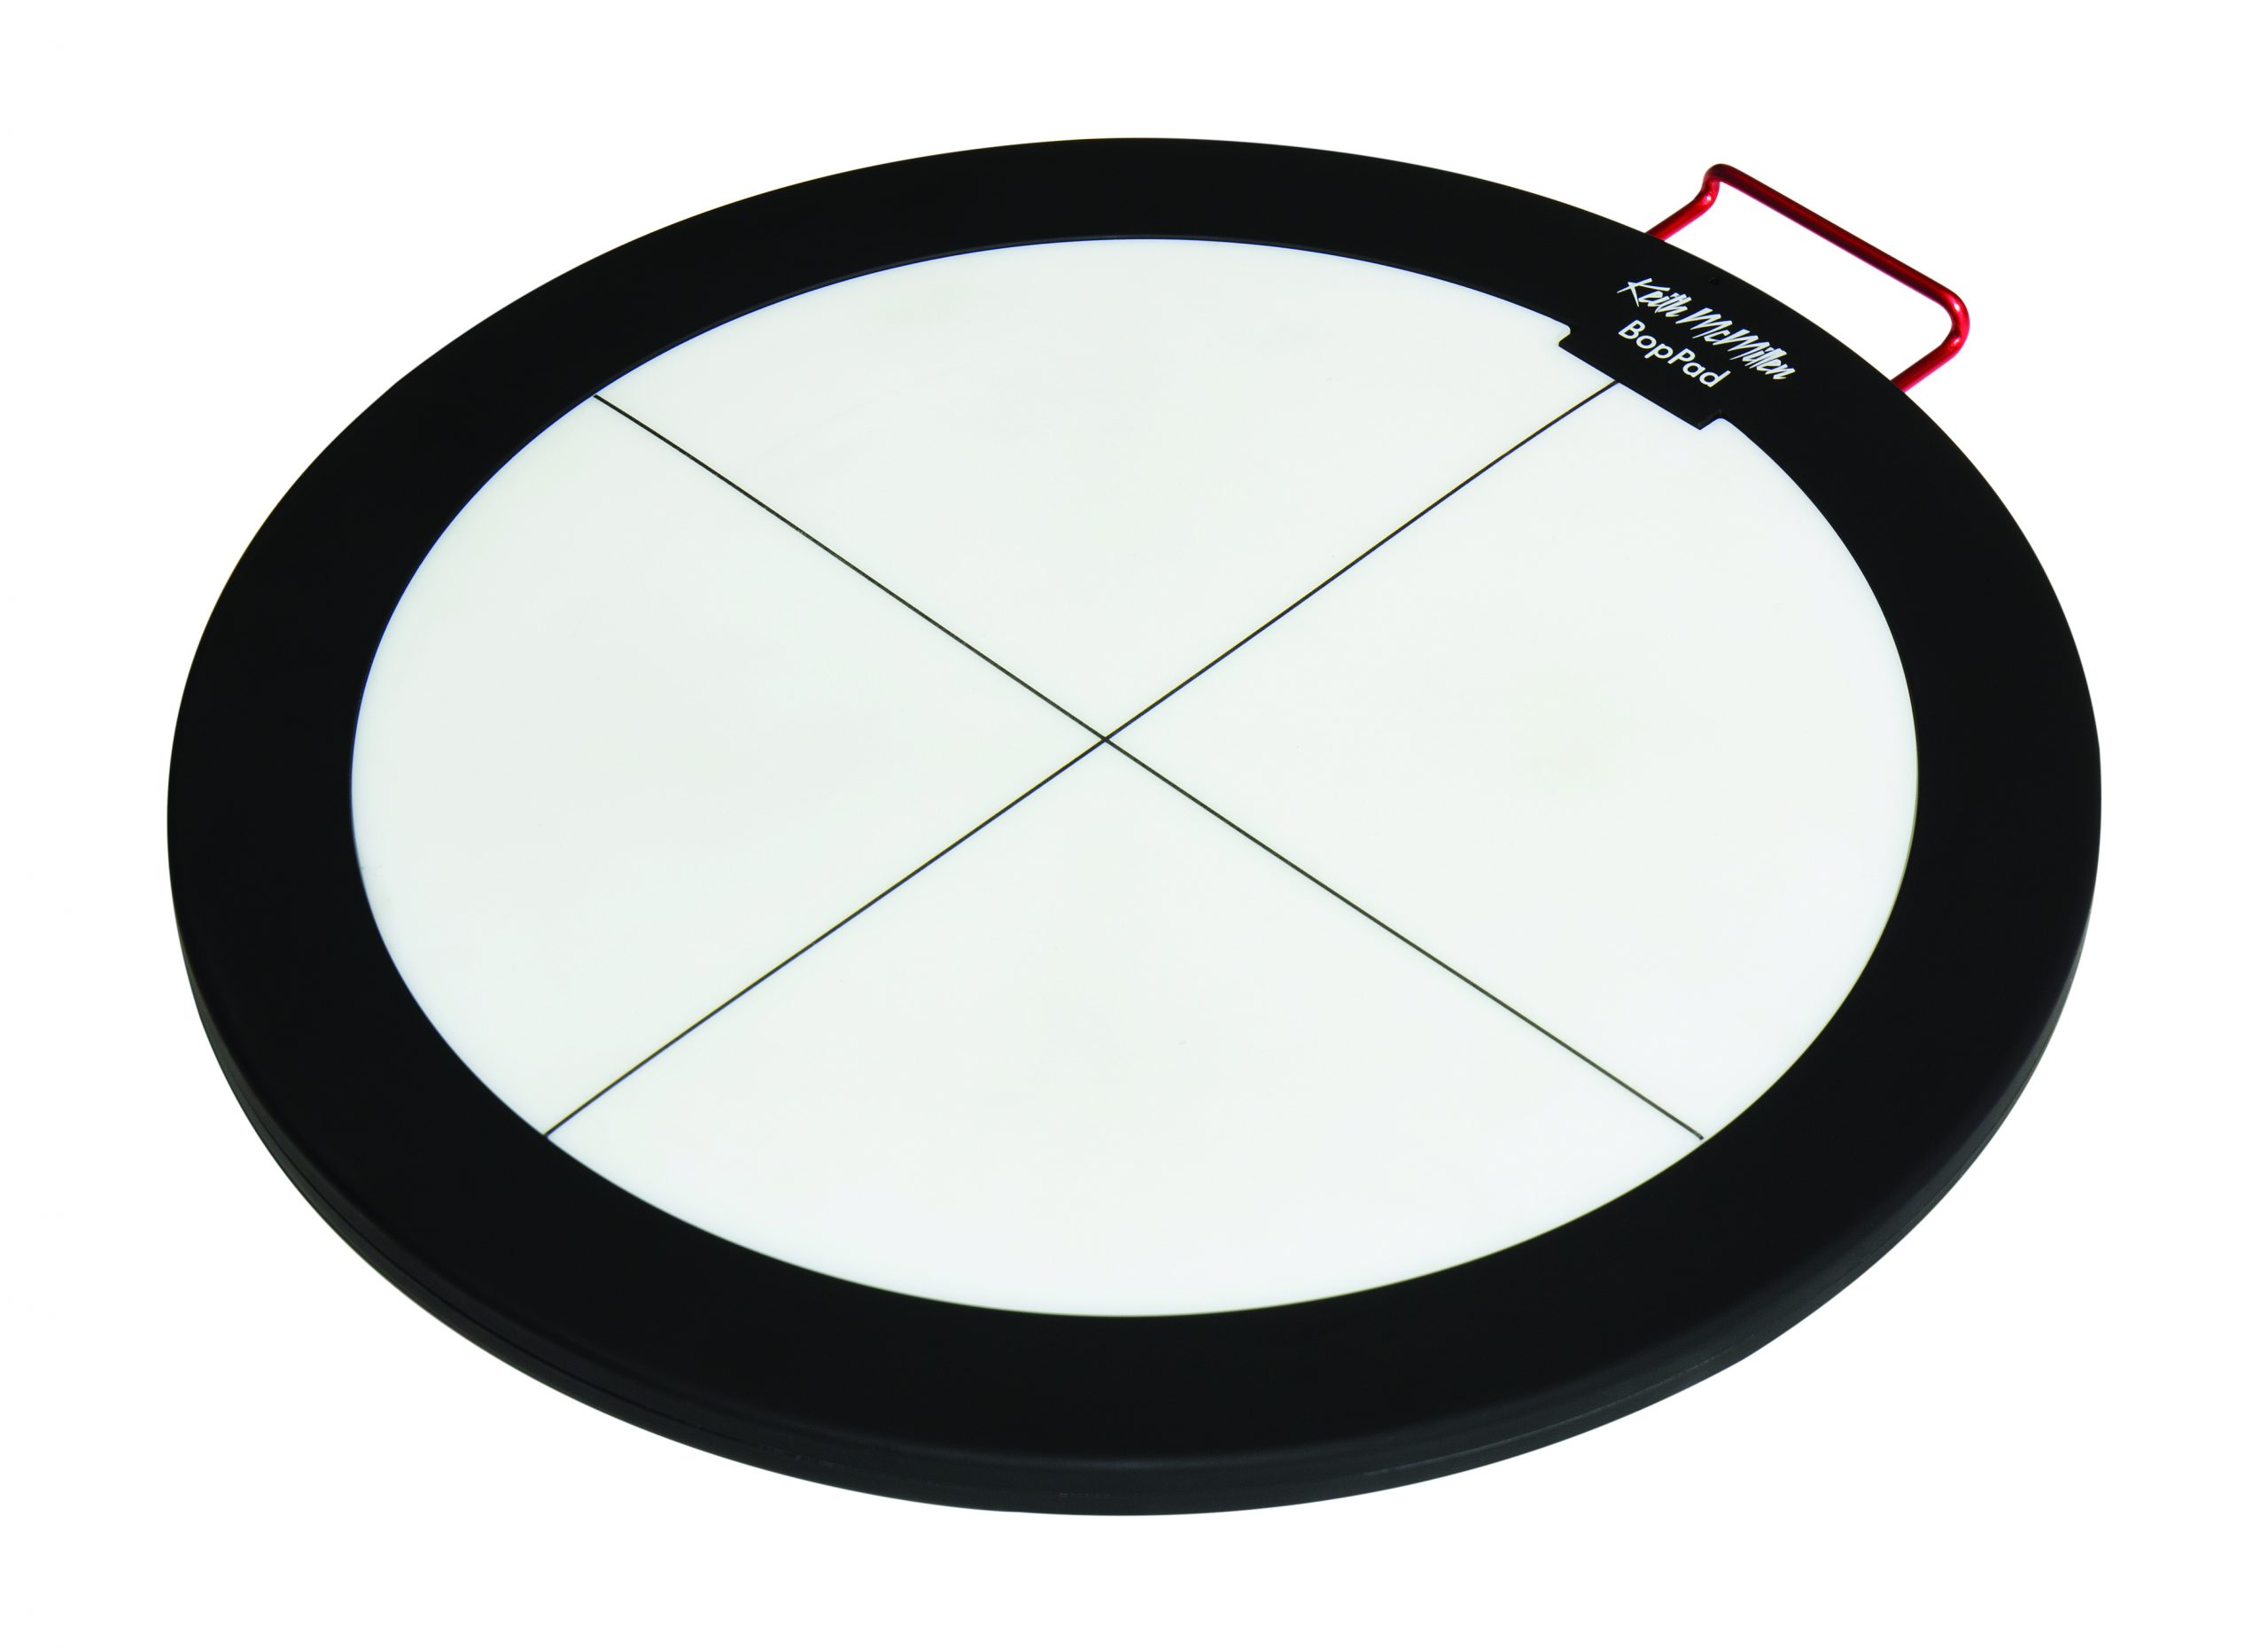 Keith McMillen Instruments introduces BopPad – a smart sensor electronic drum pad controller